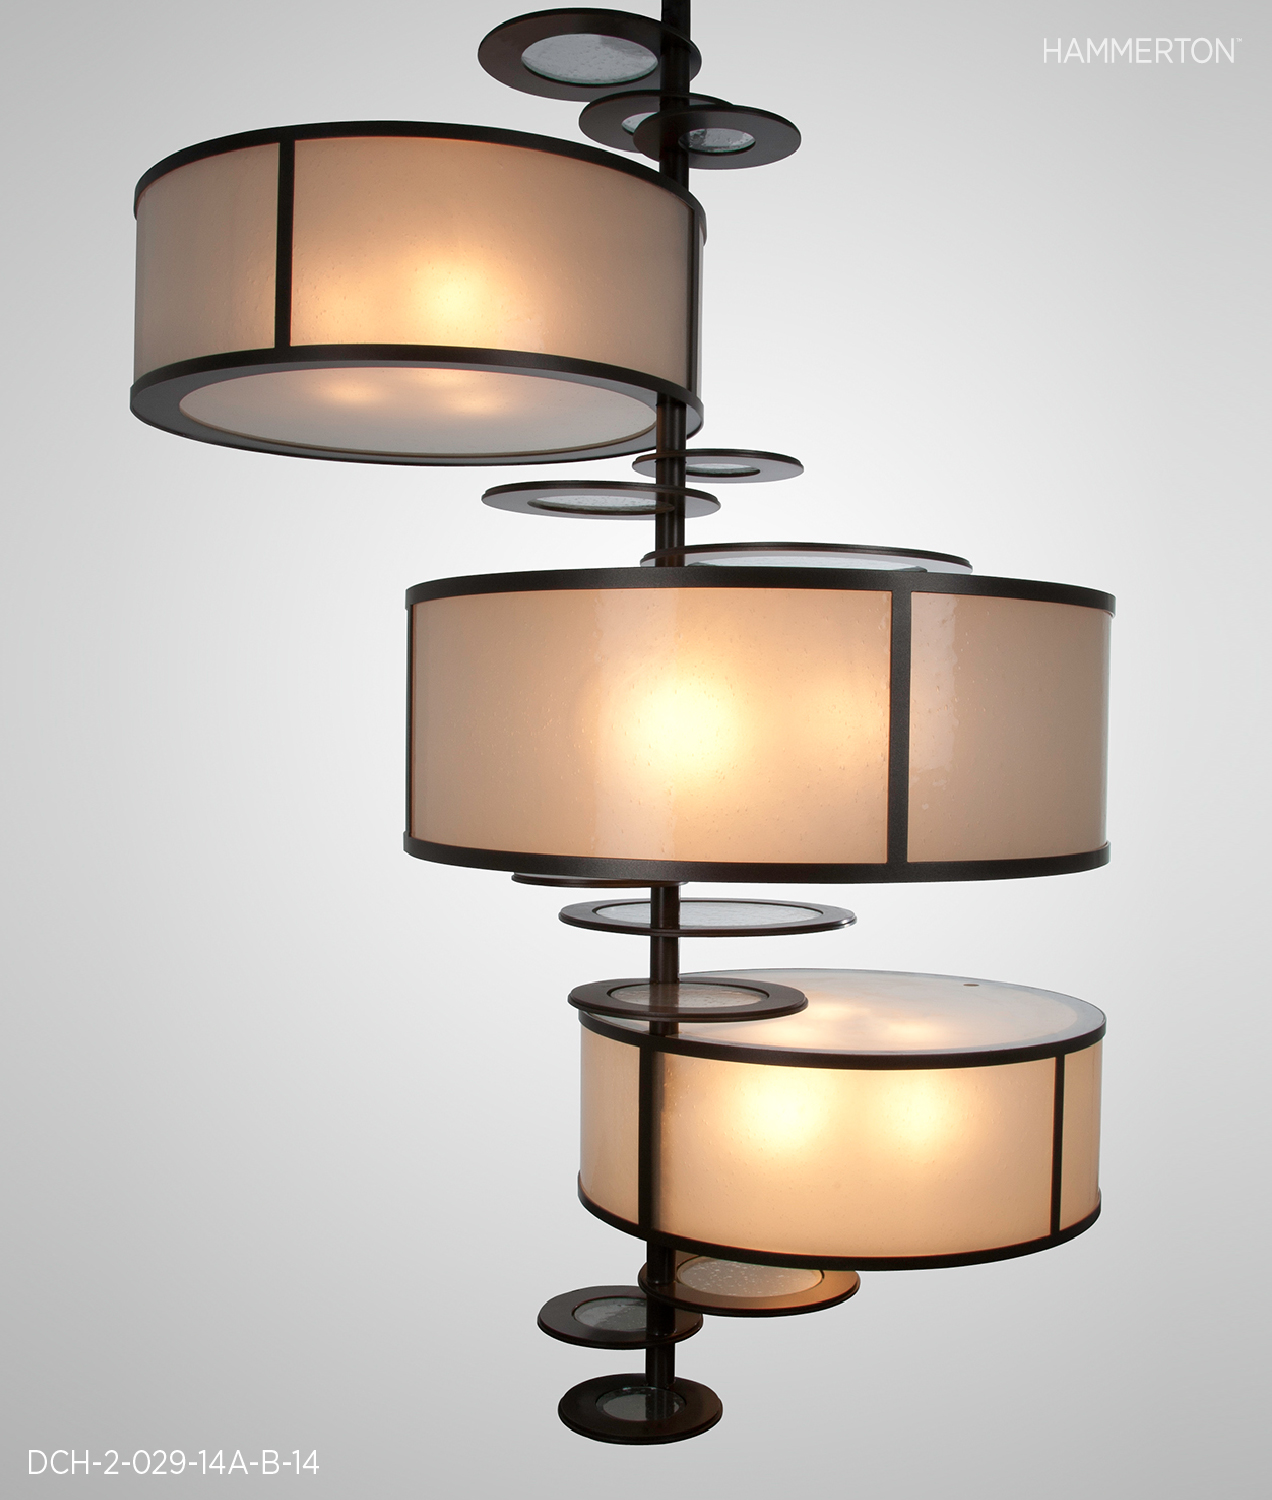 """Modified Contemporary chandelier, 60""""H x 48""""Dia, 264""""OAH, with Frosted Seeded glass diffusers and Seeded Glass ring lenses. Seaside Silver finish.     Fixture: DCH-2-029-14A-B."""